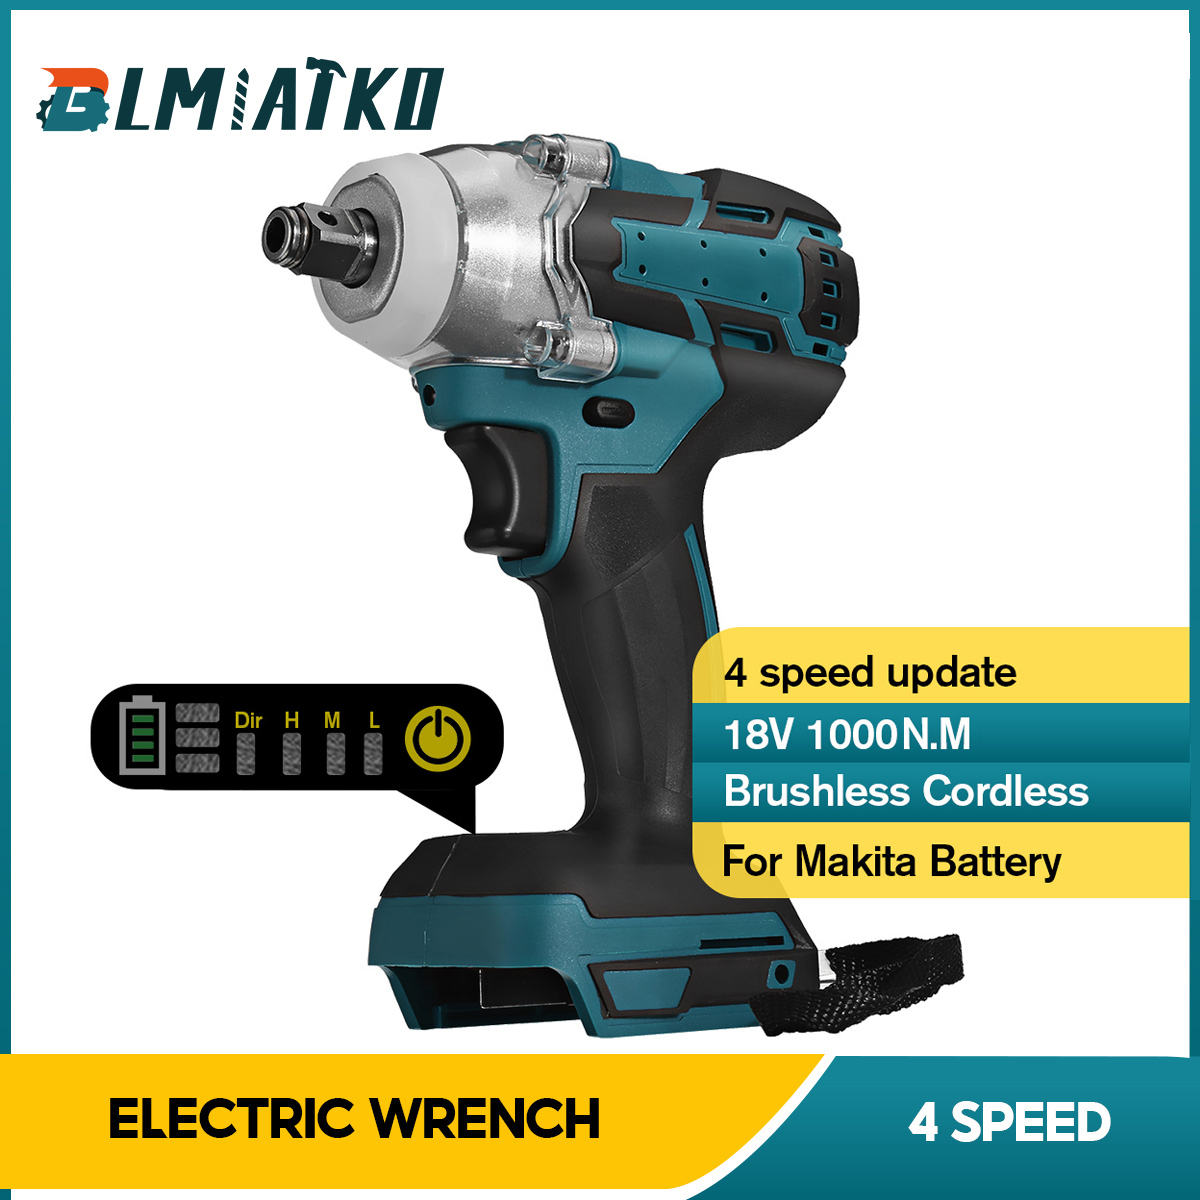 BLMIATKO Upgrade Brushless Cordless 4 Speed Electric Impact Wrench Rechargeable 1/2inch Wrench Power Tool for Makita 18V Battery